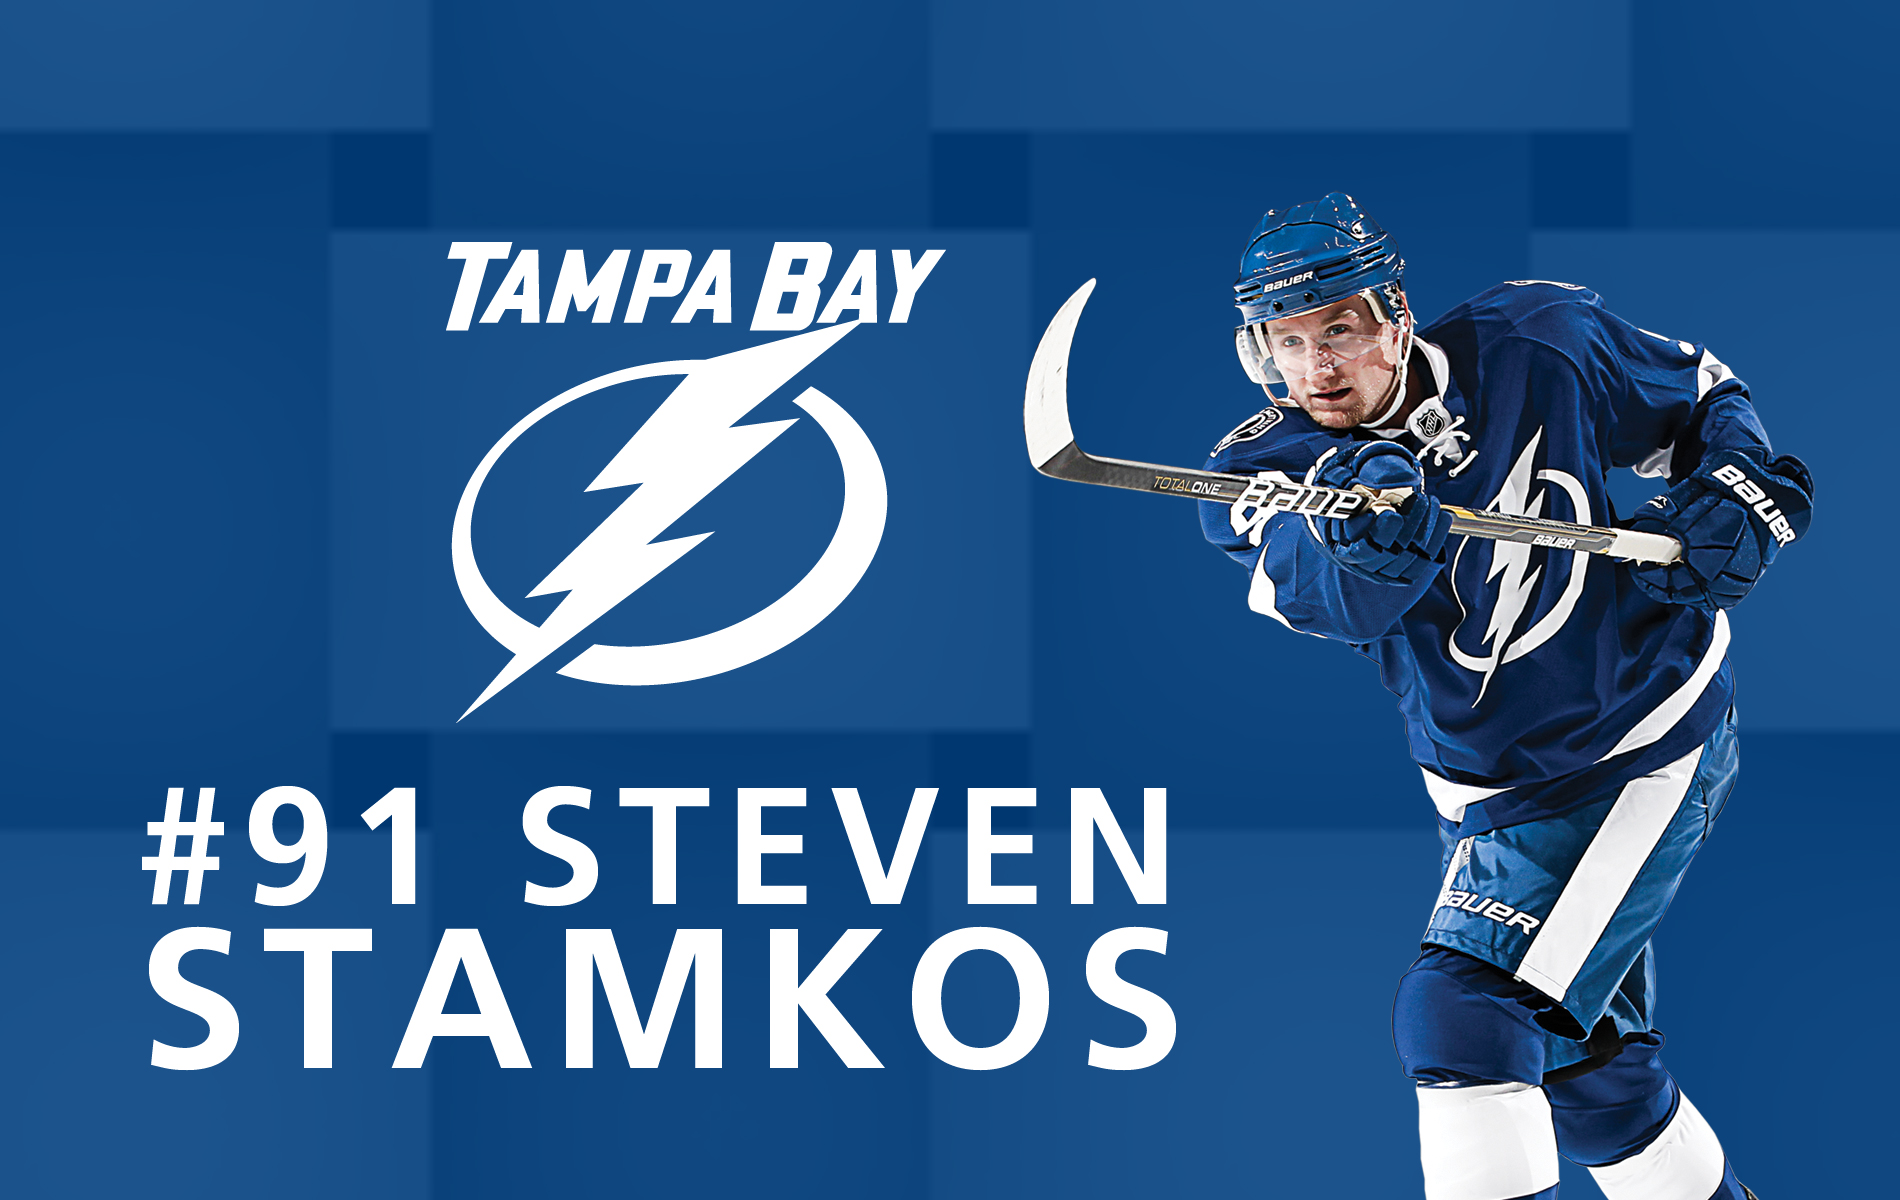 Tampa Bay Lightning Steven Stamkos Wallpaper 1900x1200